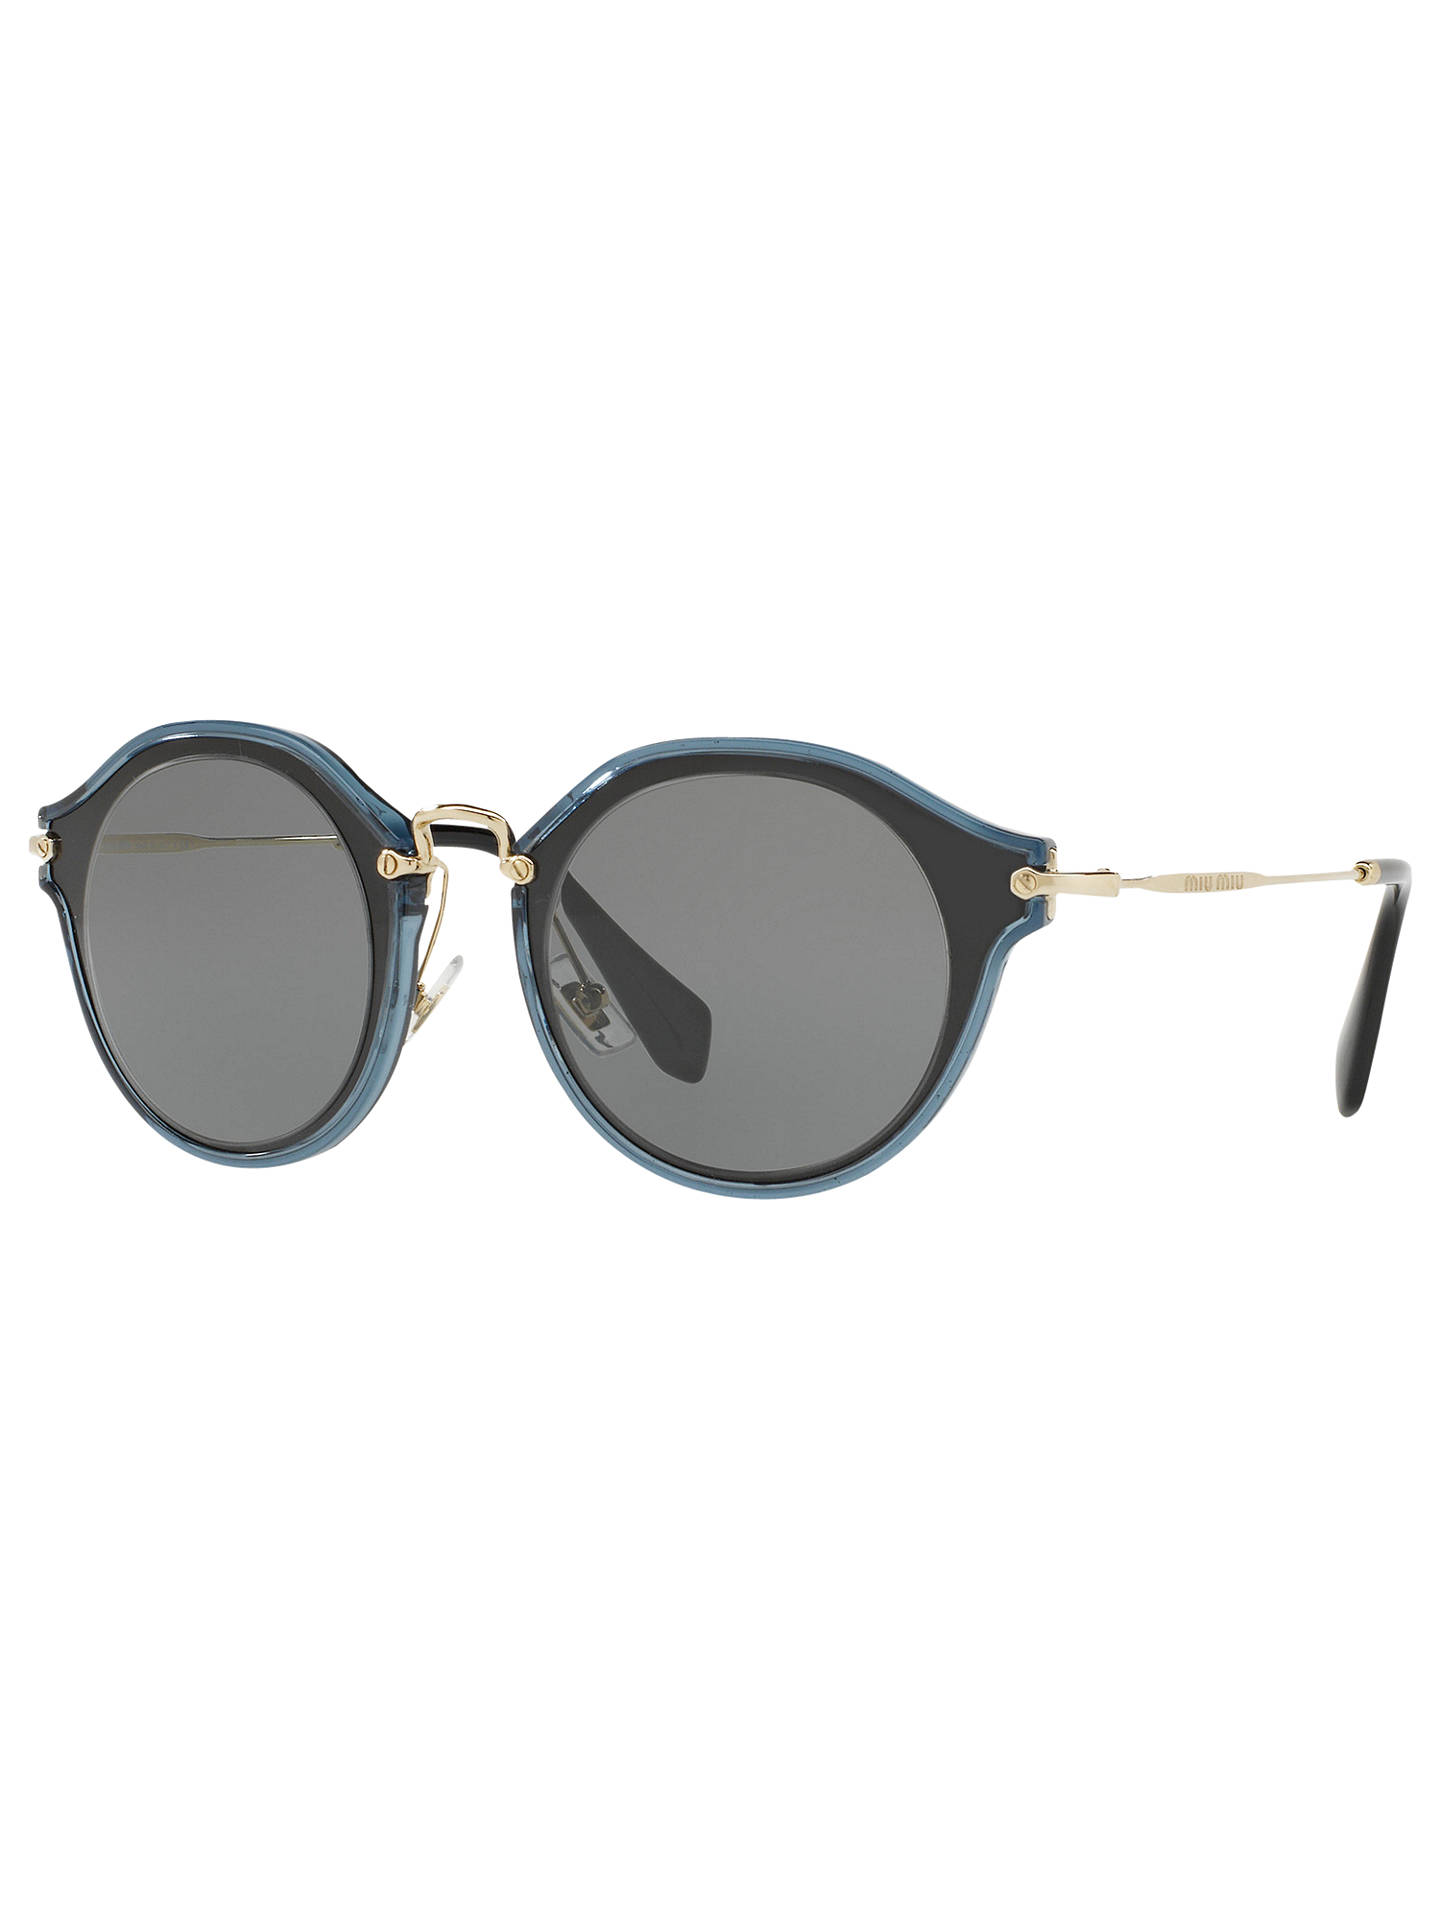 a508a28f2e Miu Miu MU 51SS Two Tone Frame Oval Sunglasses at John Lewis   Partners